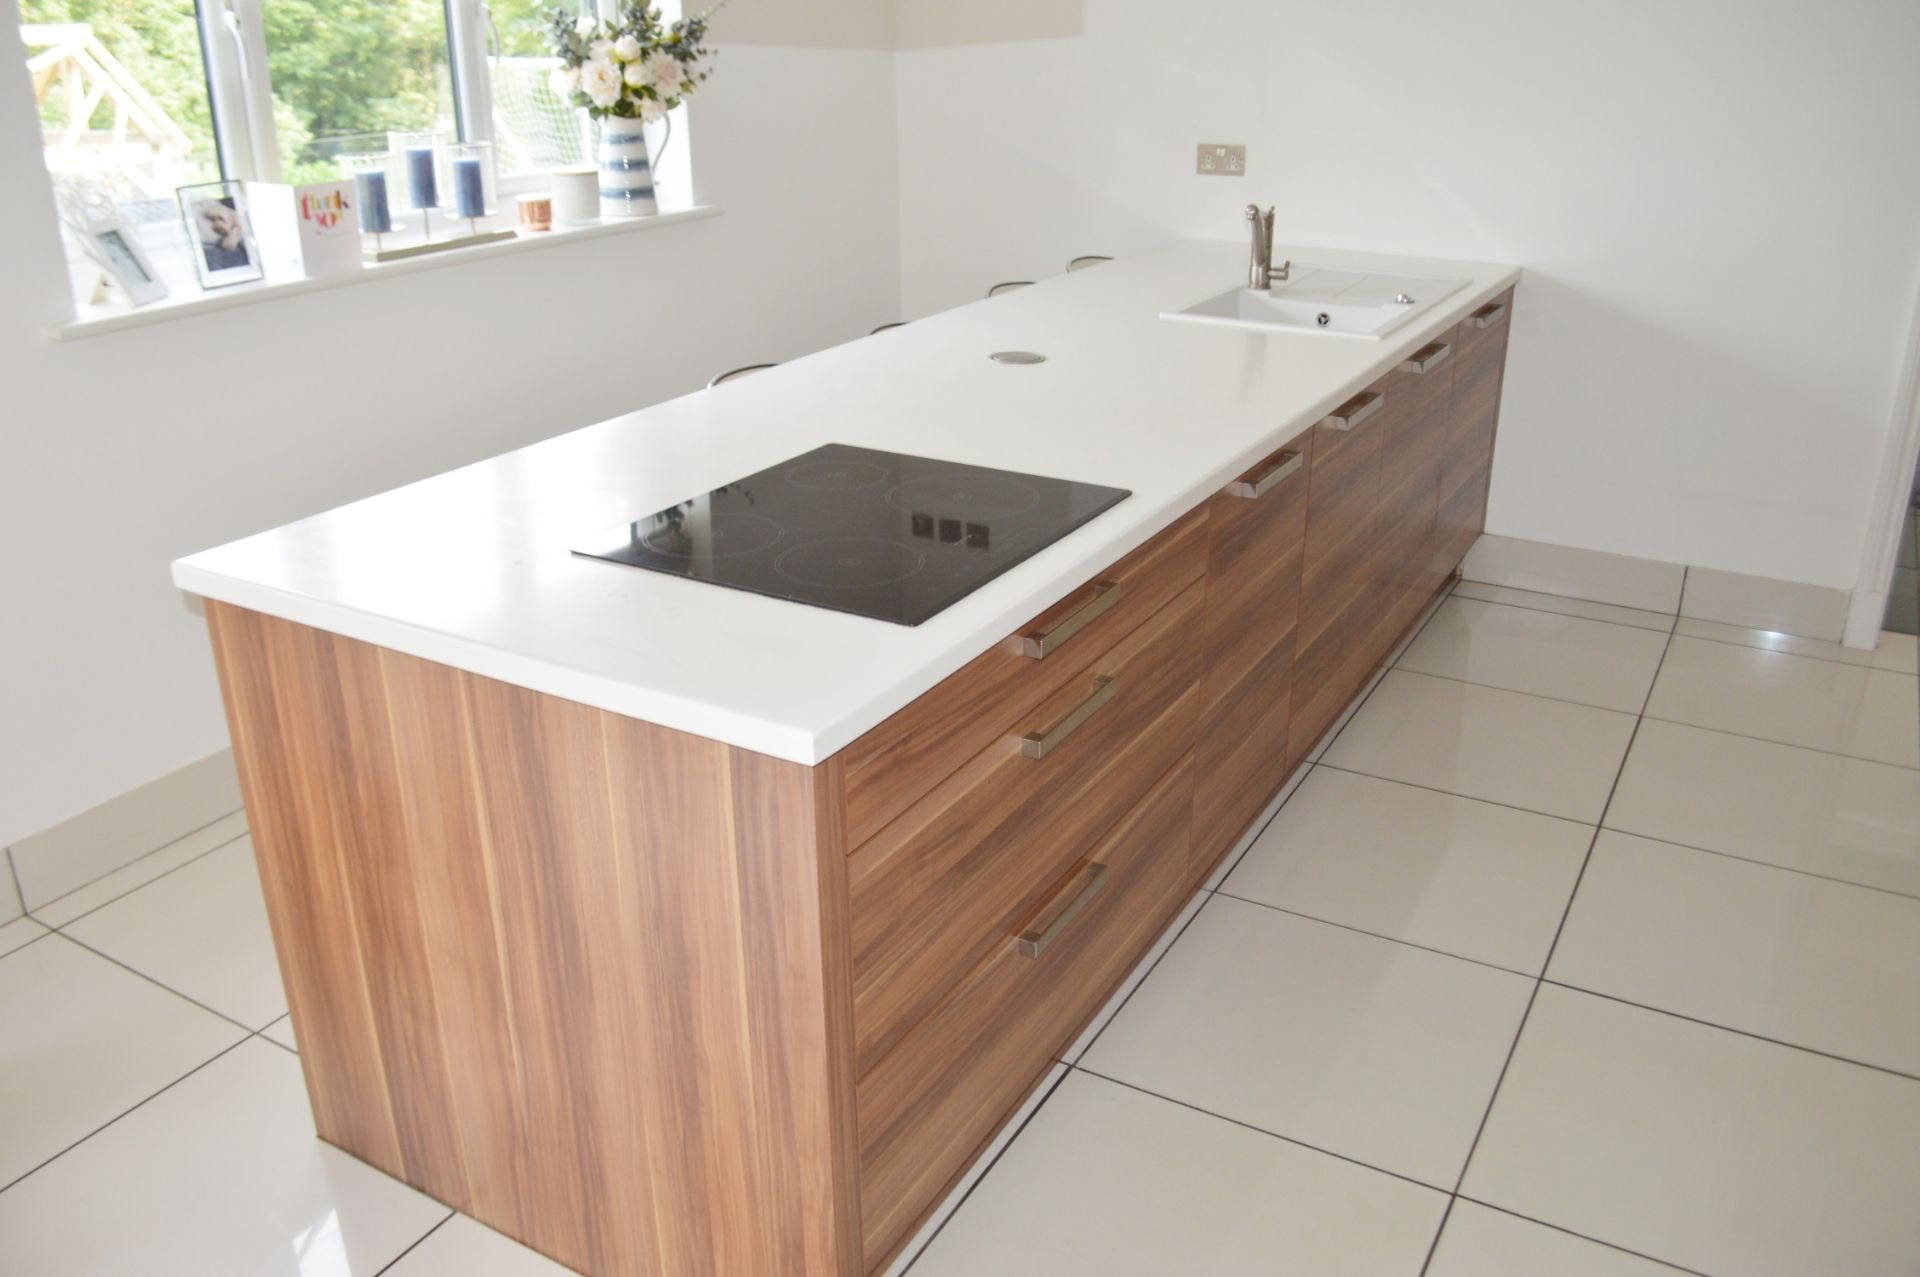 1 x Contemporary Bespoke Fitted Kitchen With Integrated Neff Branded Appliances, Quartz Worktops - Image 16 of 52